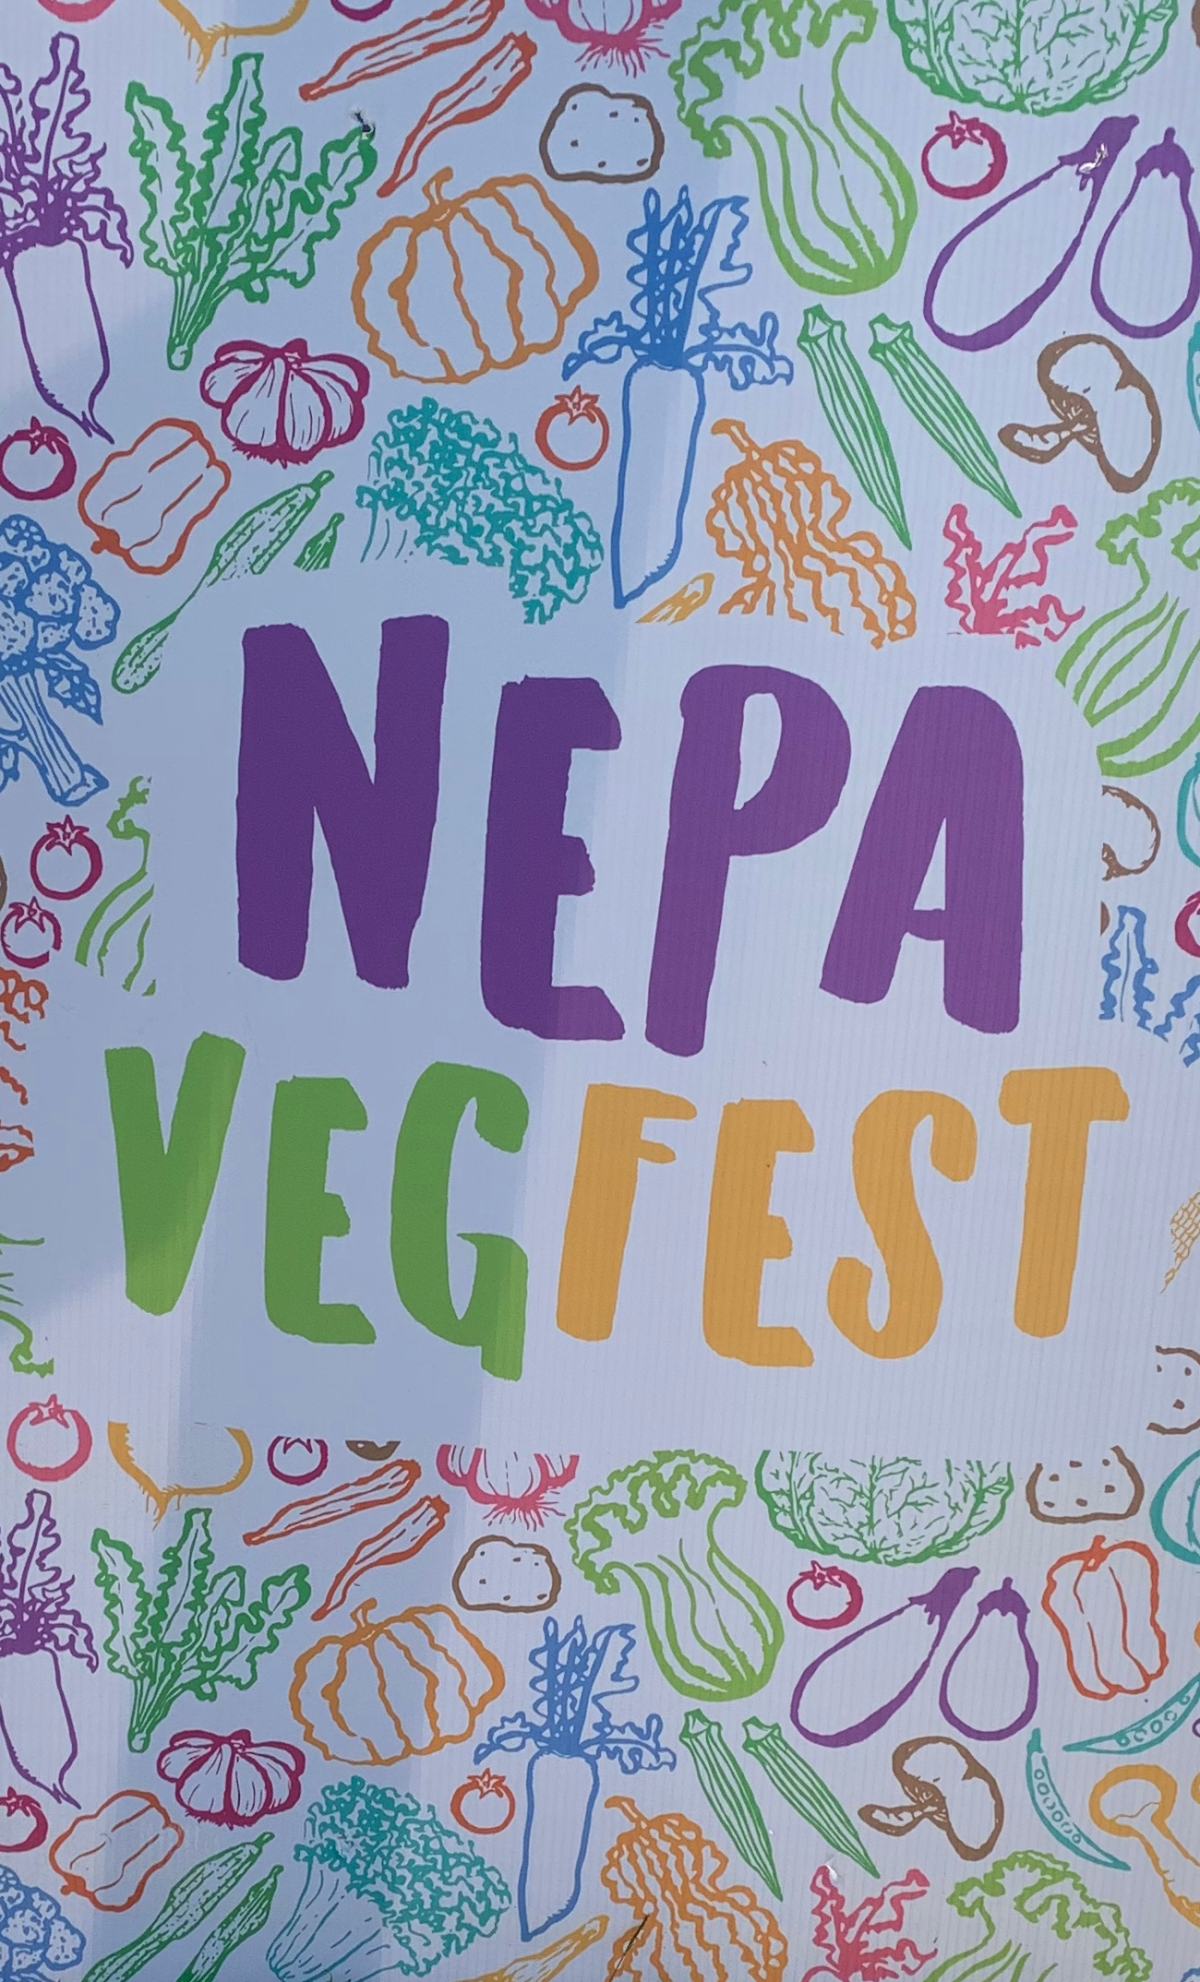 Veg Fest and Beyond: Creating a Custom Community